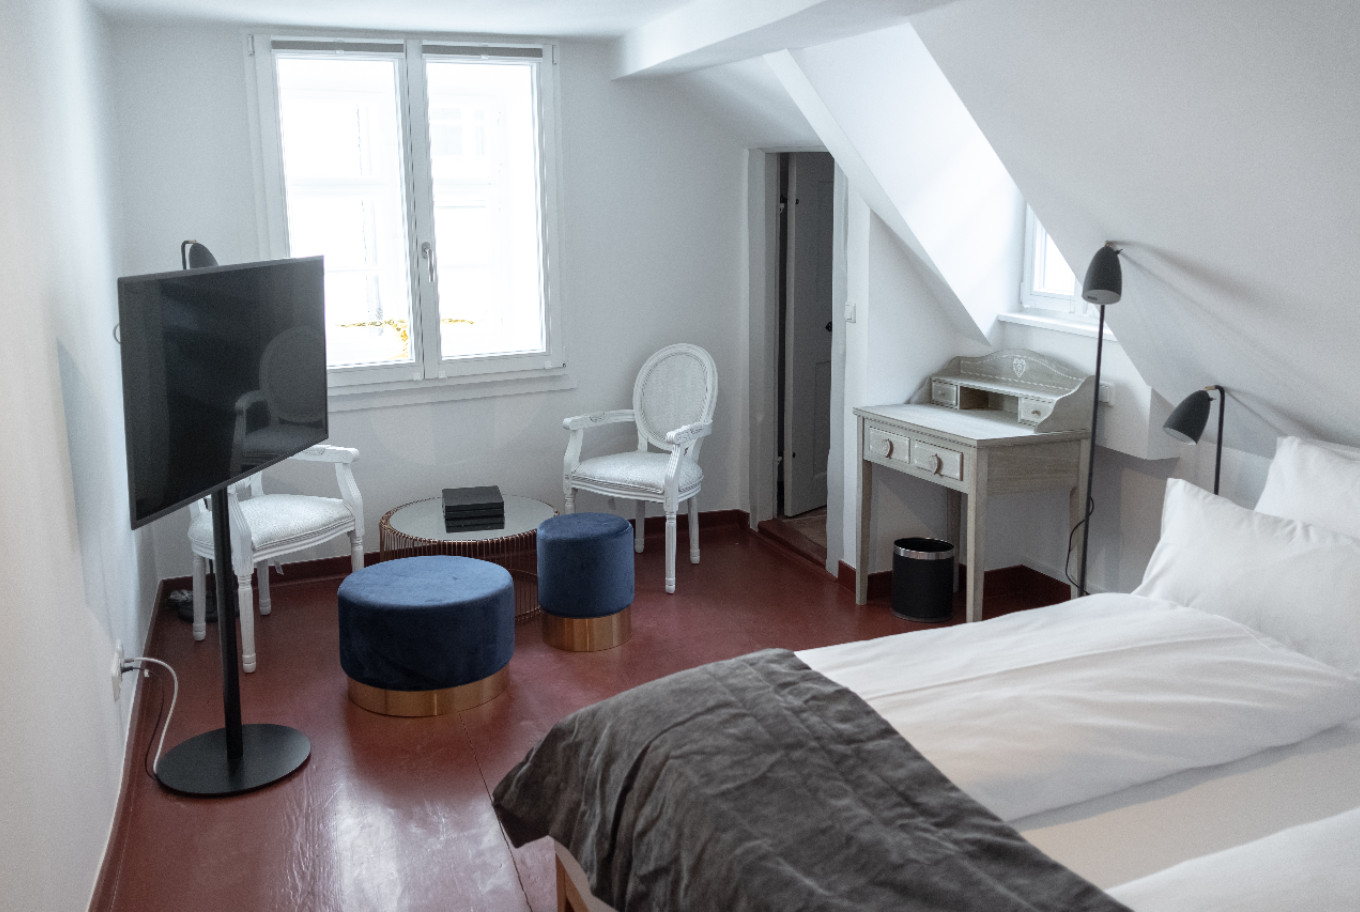 Apartment in our Boardinghouse Augsburg.